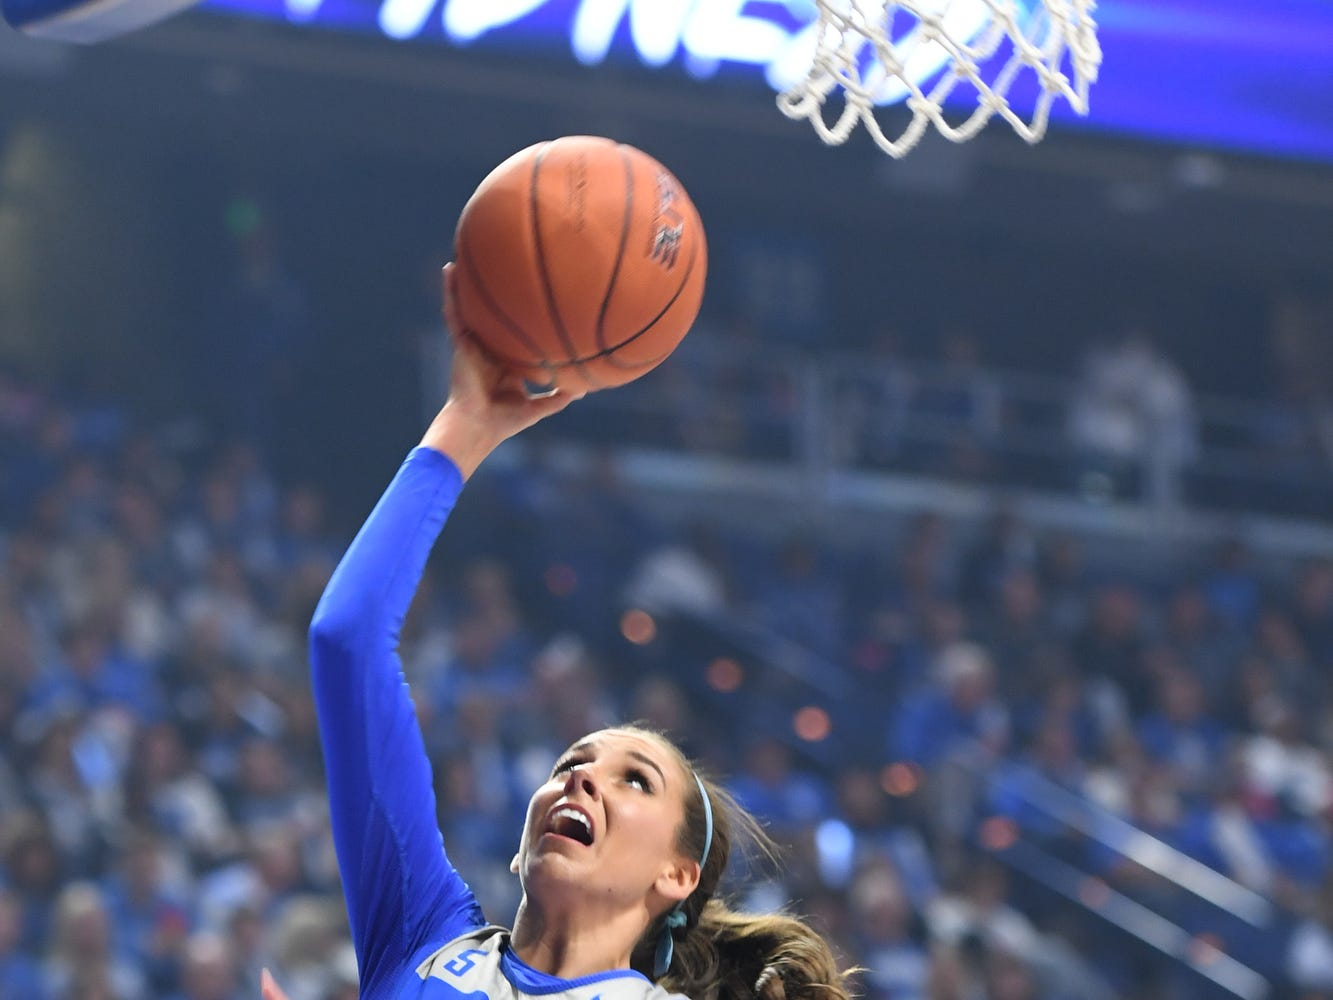 Freshman Blair Green lays up the ball during the University of Kentucky basketball's annual Big Blue Madness at Rupp Arena in Lexington, Kentucky on Friday, Oct. 12, 2018.